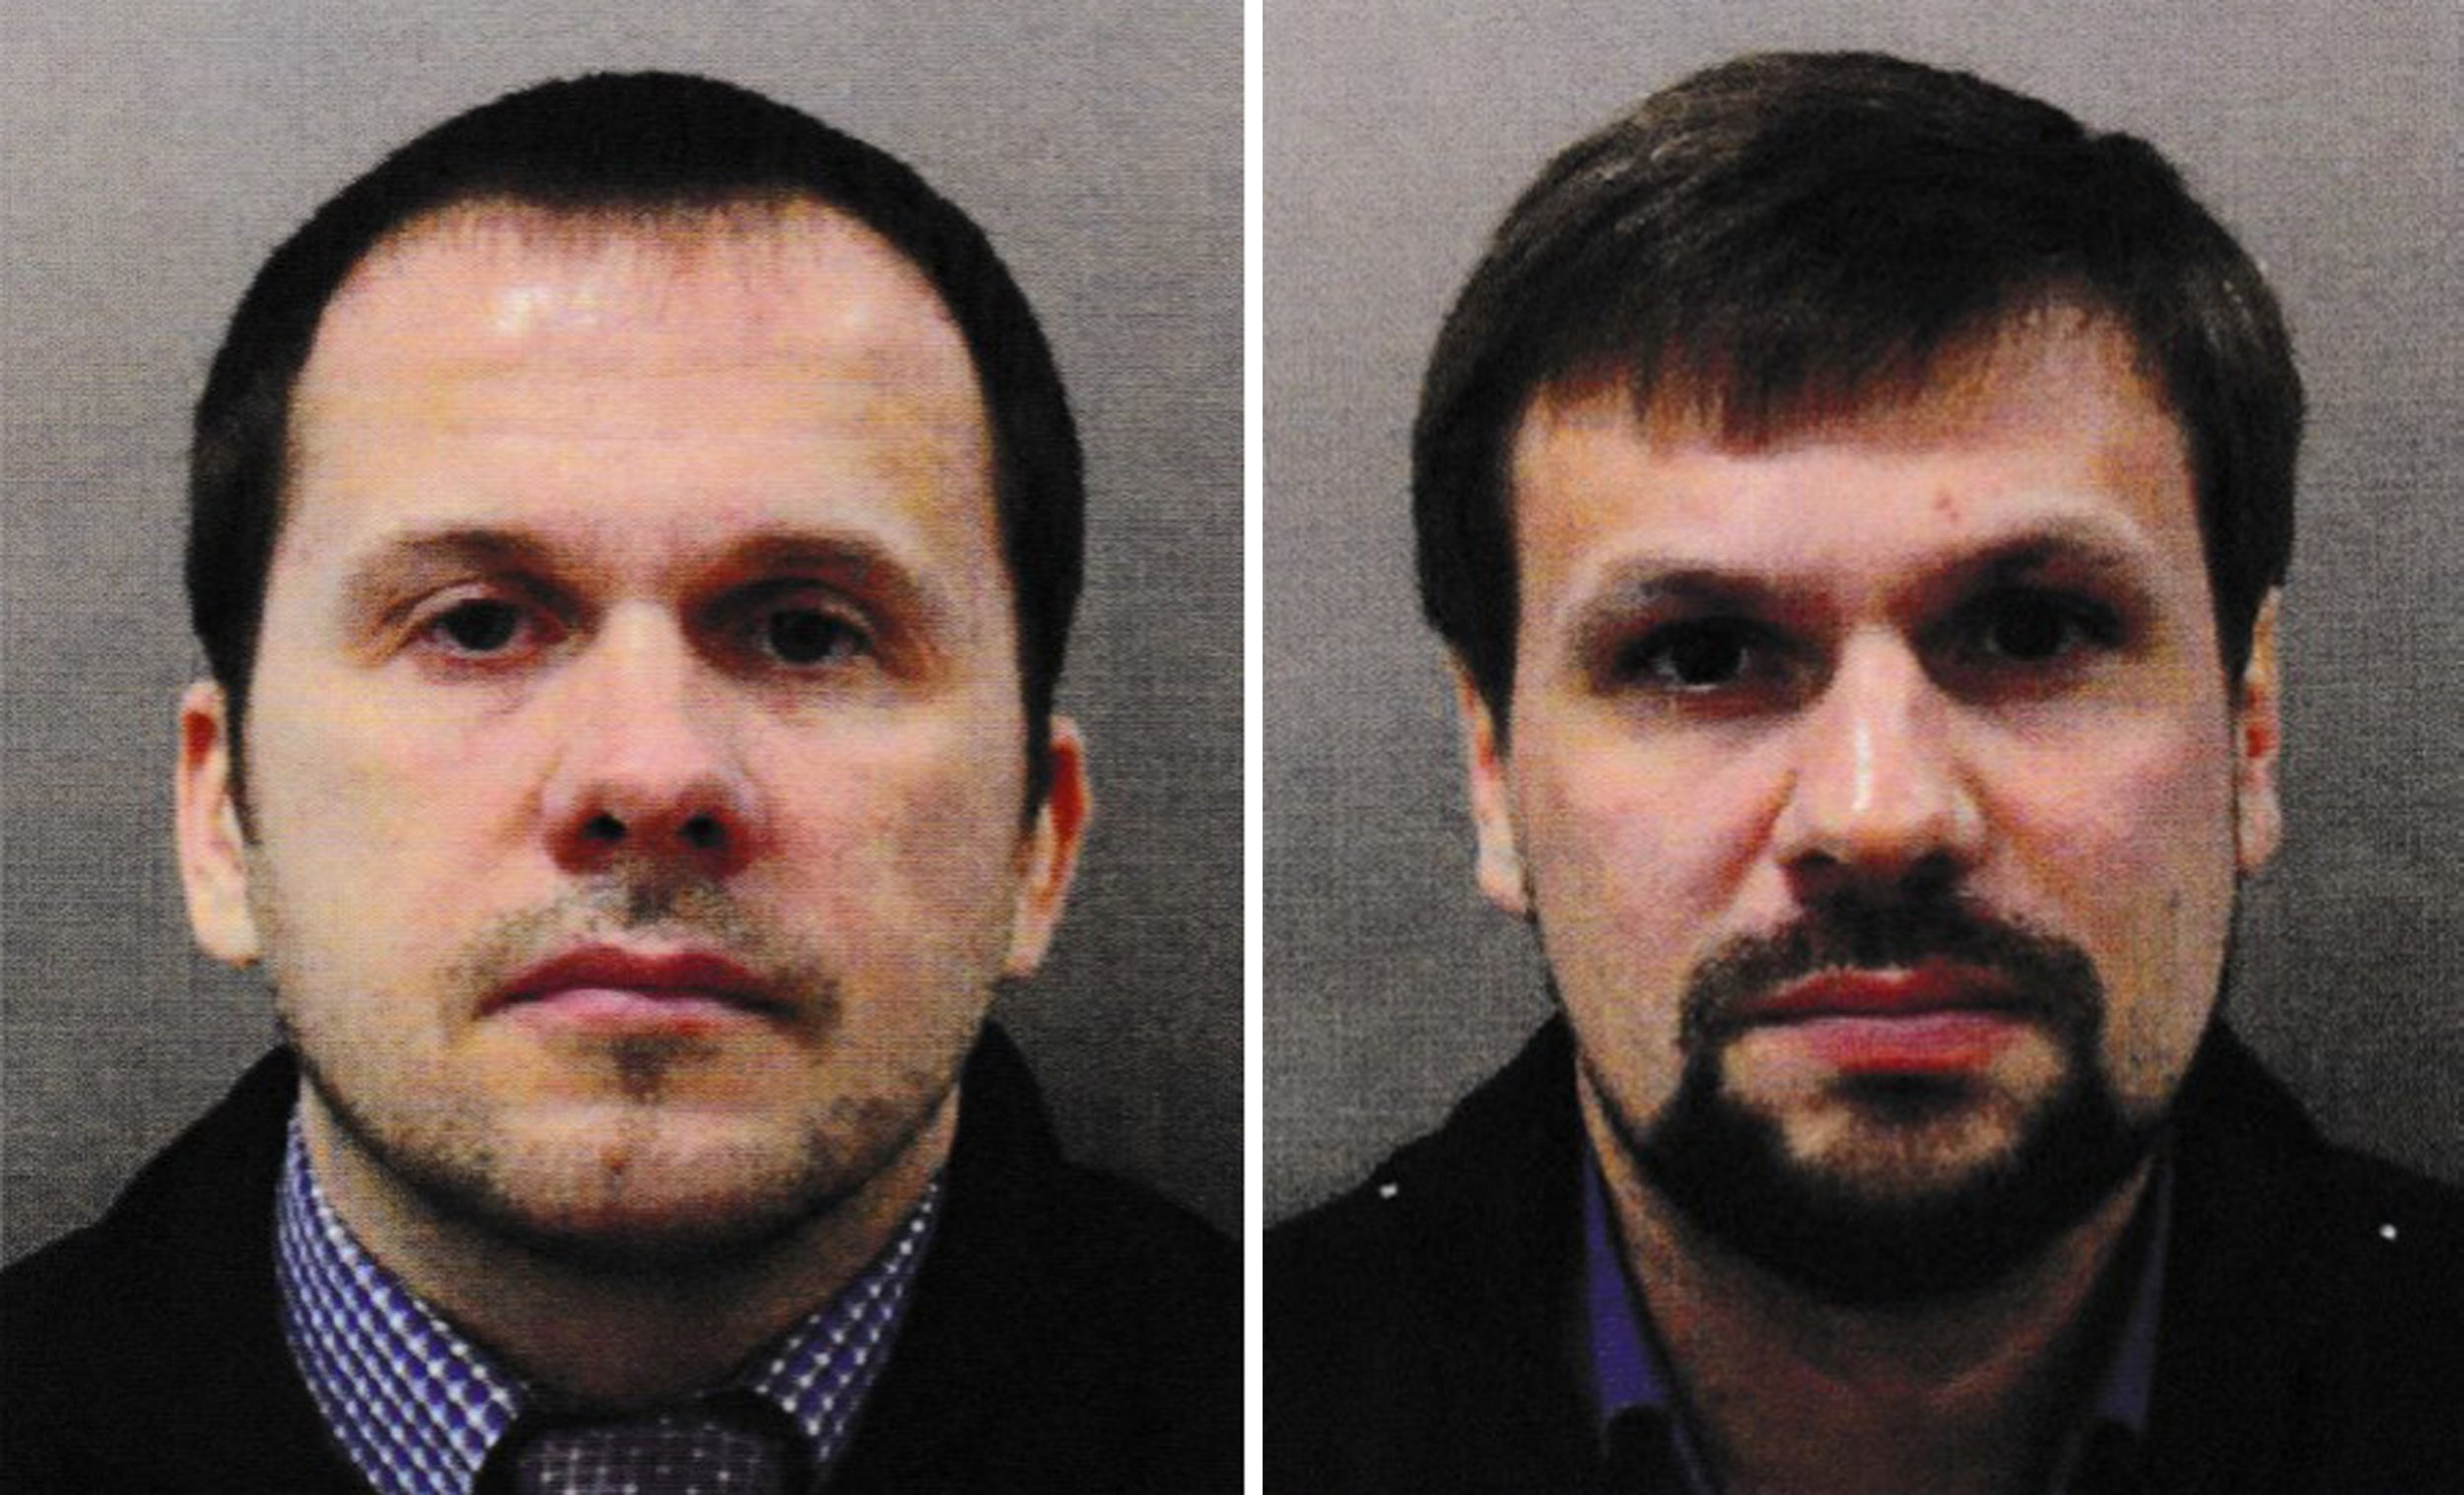 Undated handout photo issued by the Metropolitan Police of Alexander Petrov (left) and Ruslan Boshirov. The CPS has issued European Arrest Warrants for the extradition of the two Russian Nationals in connection with the Novichok poisoning attack on Sergei Skripal and his daughter Yulia in March. PRESS ASSOCIATION Photo. Issue date: Wednesday September 5, 2018. See PA story POLICE Salisbury. Photo credit should read: Metropolitan Police/PA Wire NOTE TO EDITORS: This handout photo may only be used in for editorial reporting purposes for the contemporaneous illustration of events, things or the people in the image or facts mentioned in the caption. Reuse of the picture may require further permission from the copyright holder.